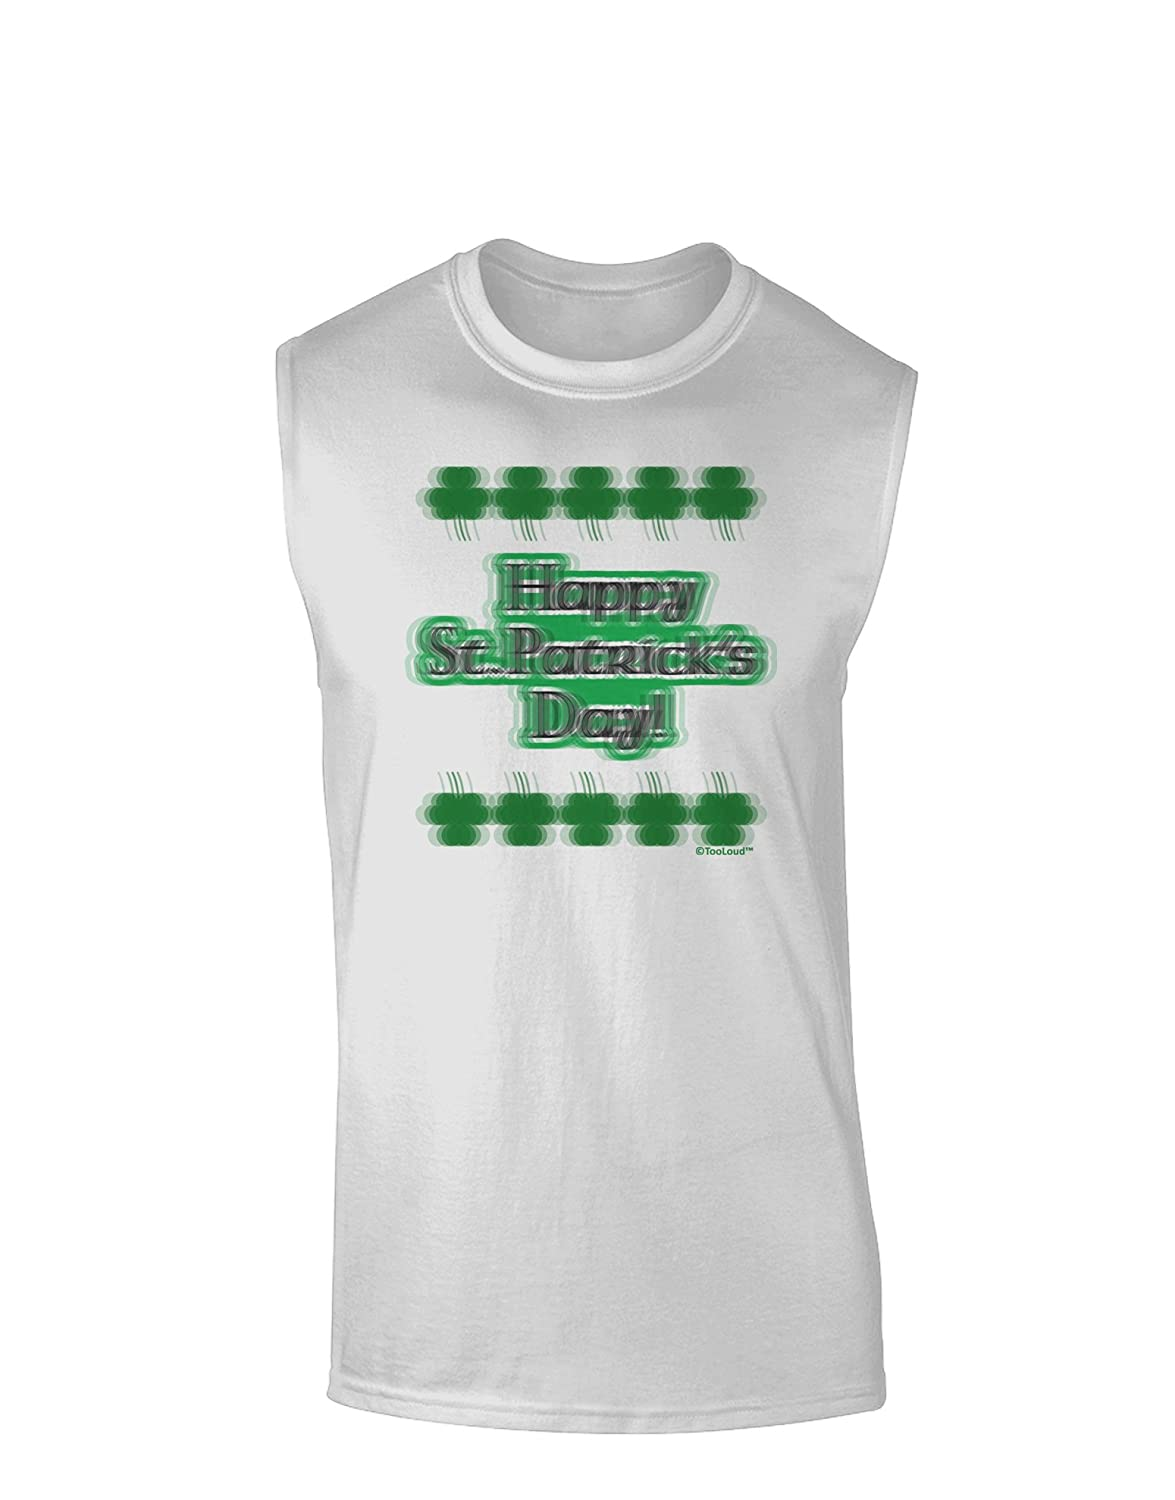 TooLoud Seeing Double St Patricks Day Muscle Shirt